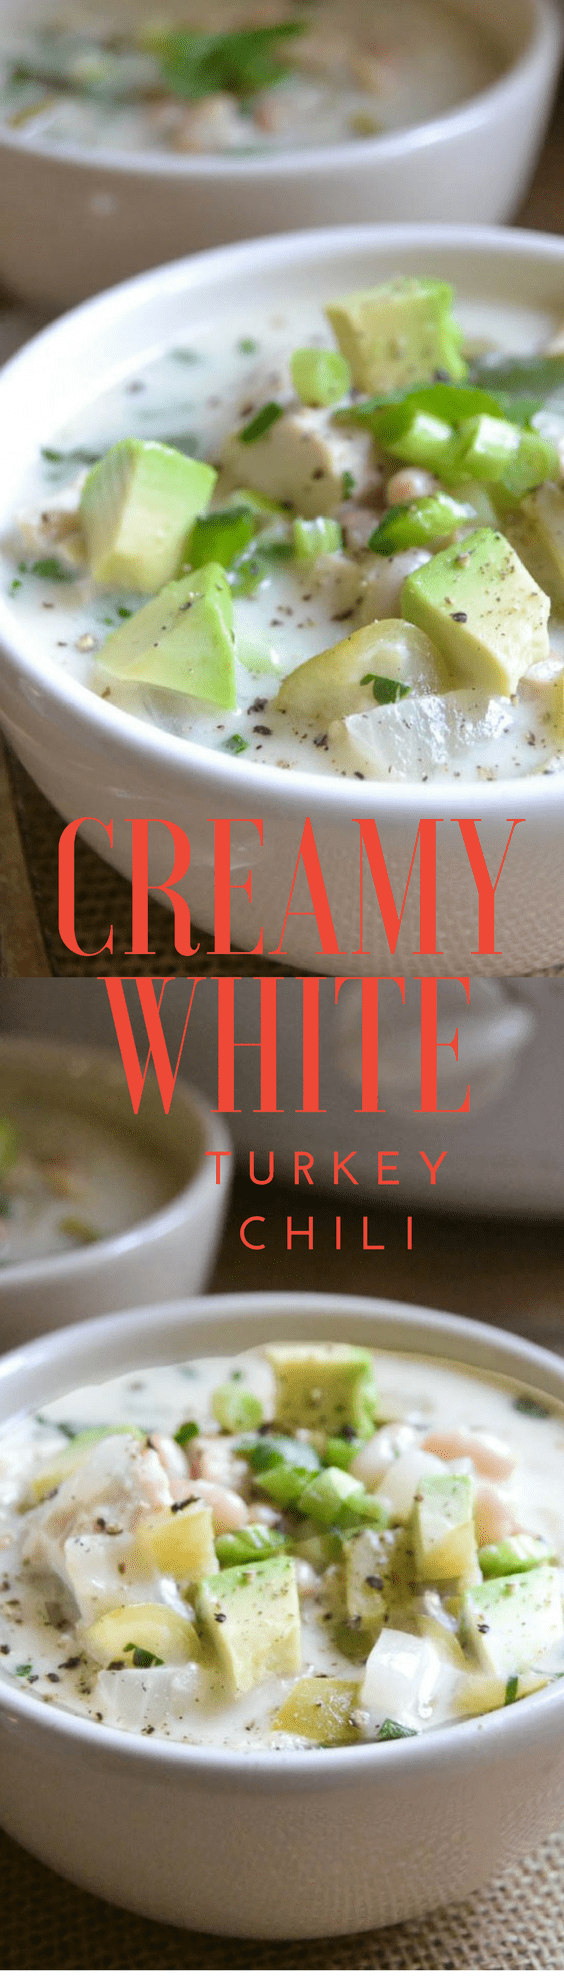 Creamy White (leftover) Turkey Chili is a luscious creamy white chili that gets raves every time ~ best of all, the slow cooker does all the work and you get all the glory! #whitechili #turkey #leftoverturkey #leftovers #thanksgivingleftovers #easywhitechili #turkeychili #soup #stew #fall